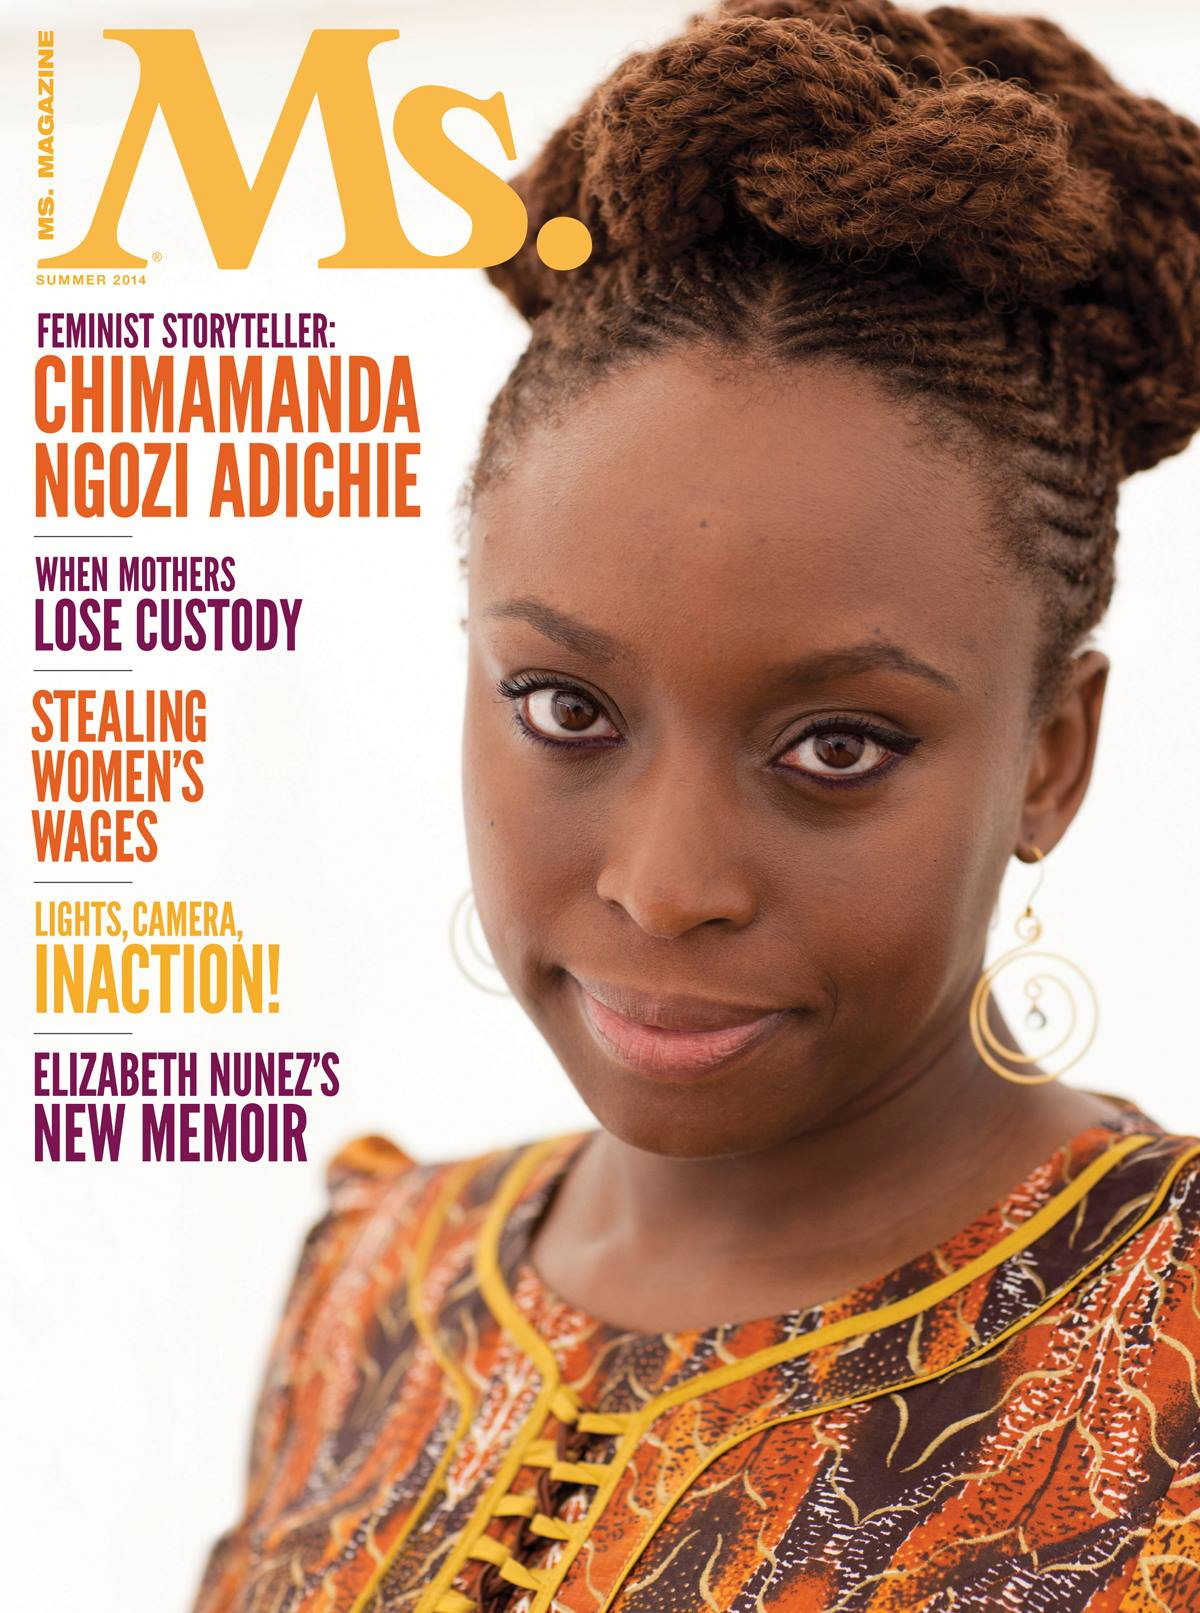 The cover story of our upcoming Summer 2014 issue: an interview with Chimamanda Ngozi Adichie!  Buy the issue in print or digital formats:  http://bit.ly/1hA1wj1